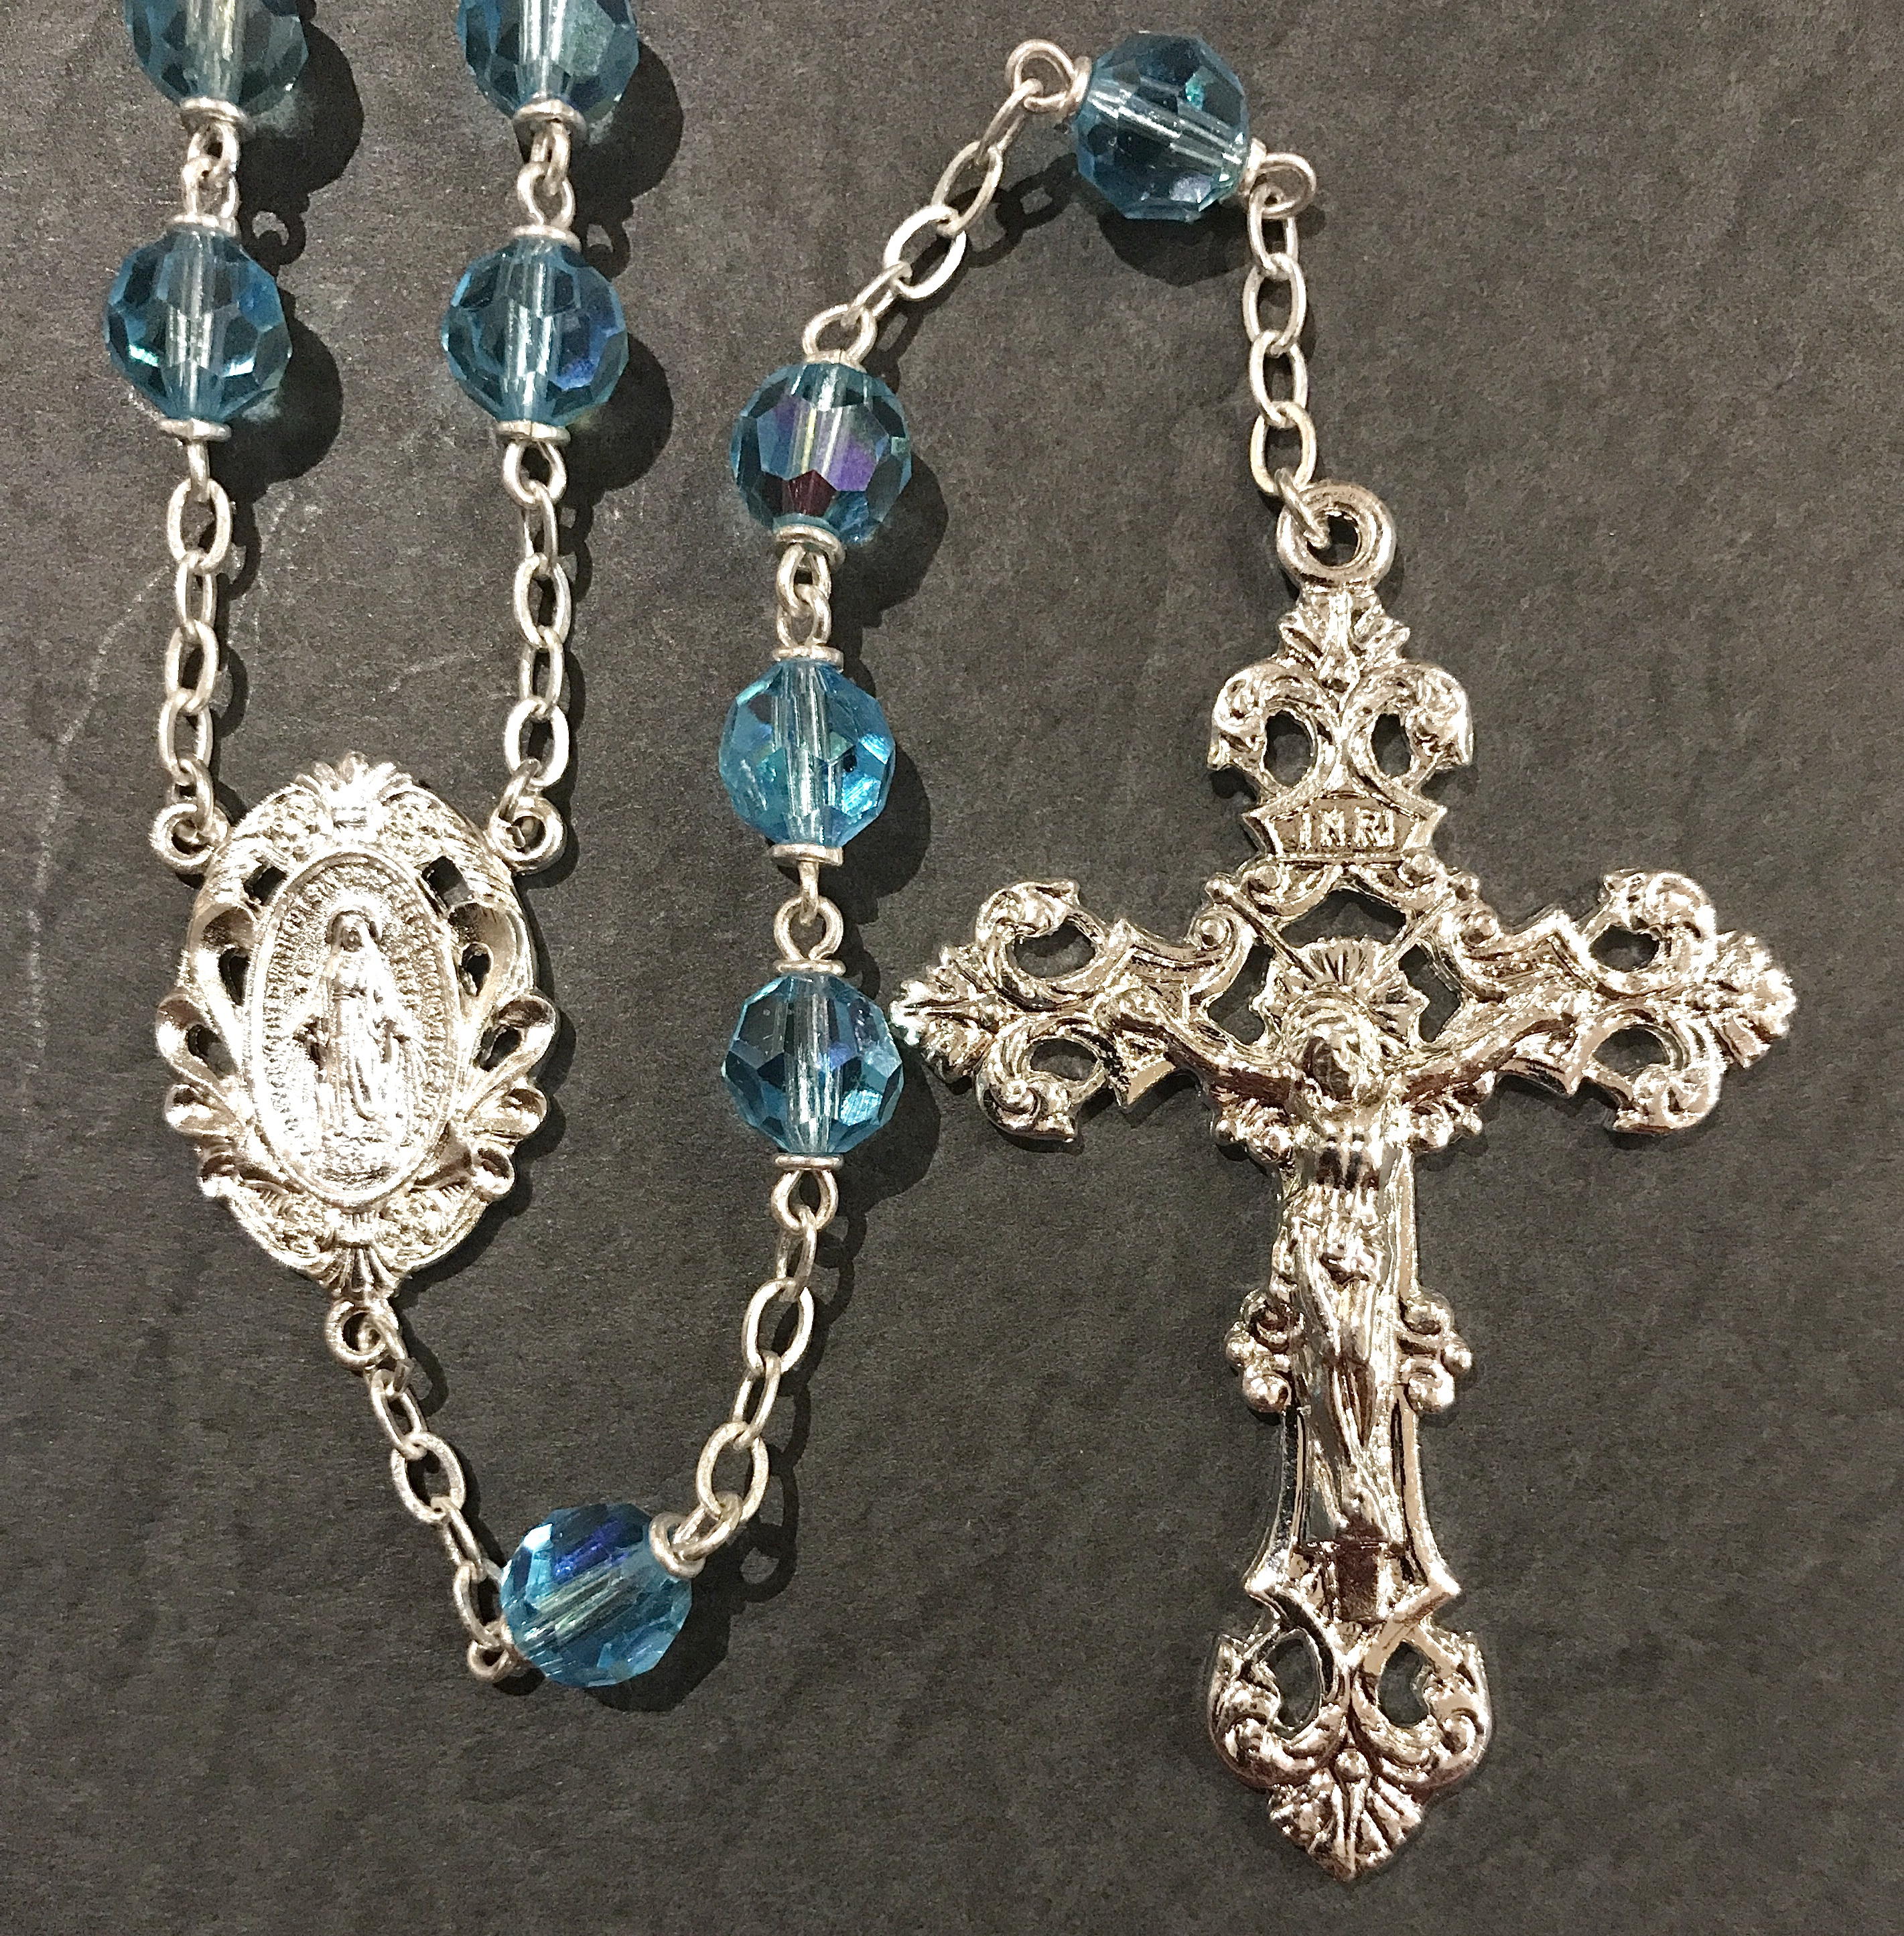 7mm AQUA TIN CUT AB ROSARY WITH STERLING SILVER PLATED CRUCIFIX, CENTER, WIRE, CHAIN GIFT BOXED